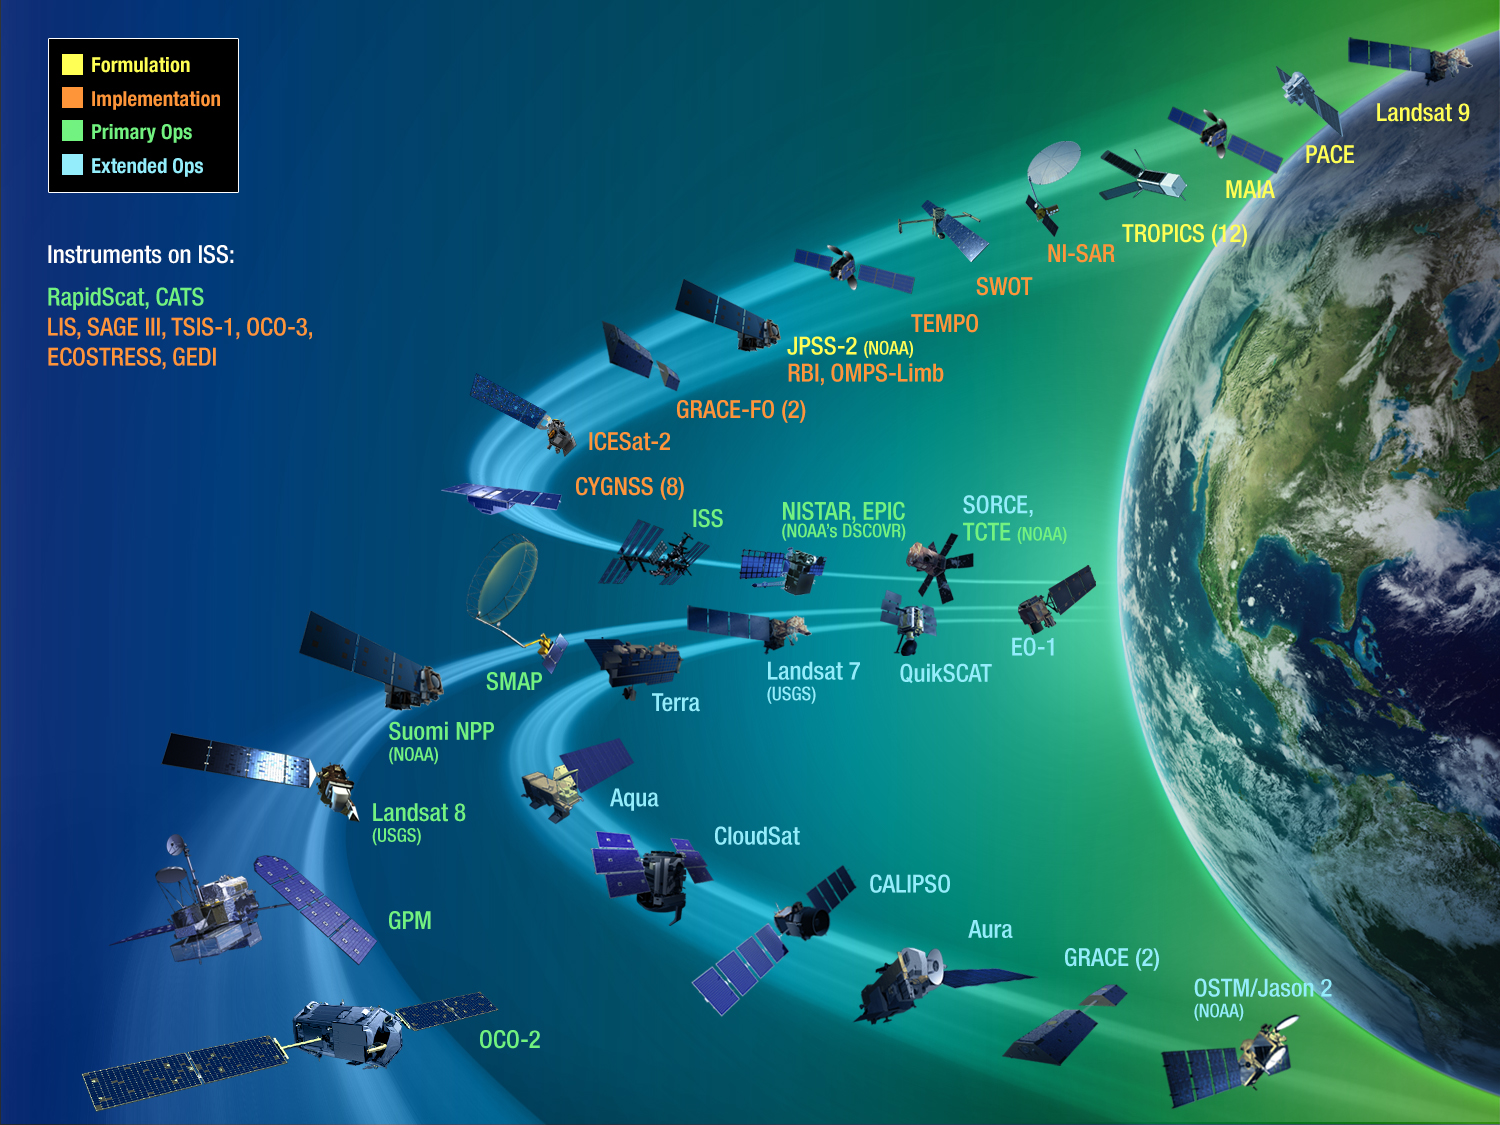 NASA's Earth observation satellites, both current and future missions. Credit: NASA